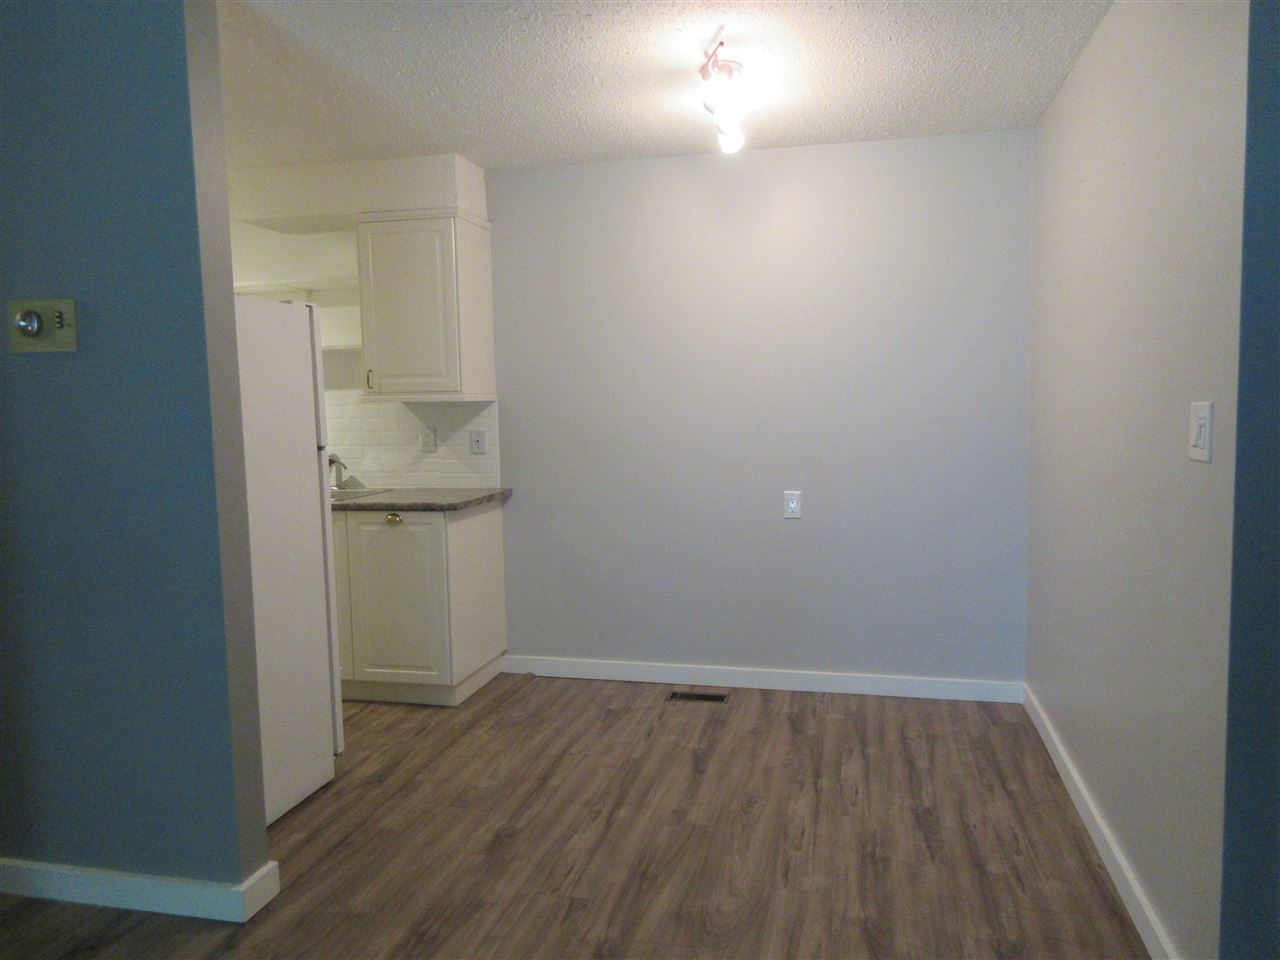 Photo 12: 103 51 AKINS Drive: St. Albert Condo for sale : MLS® # E4060963